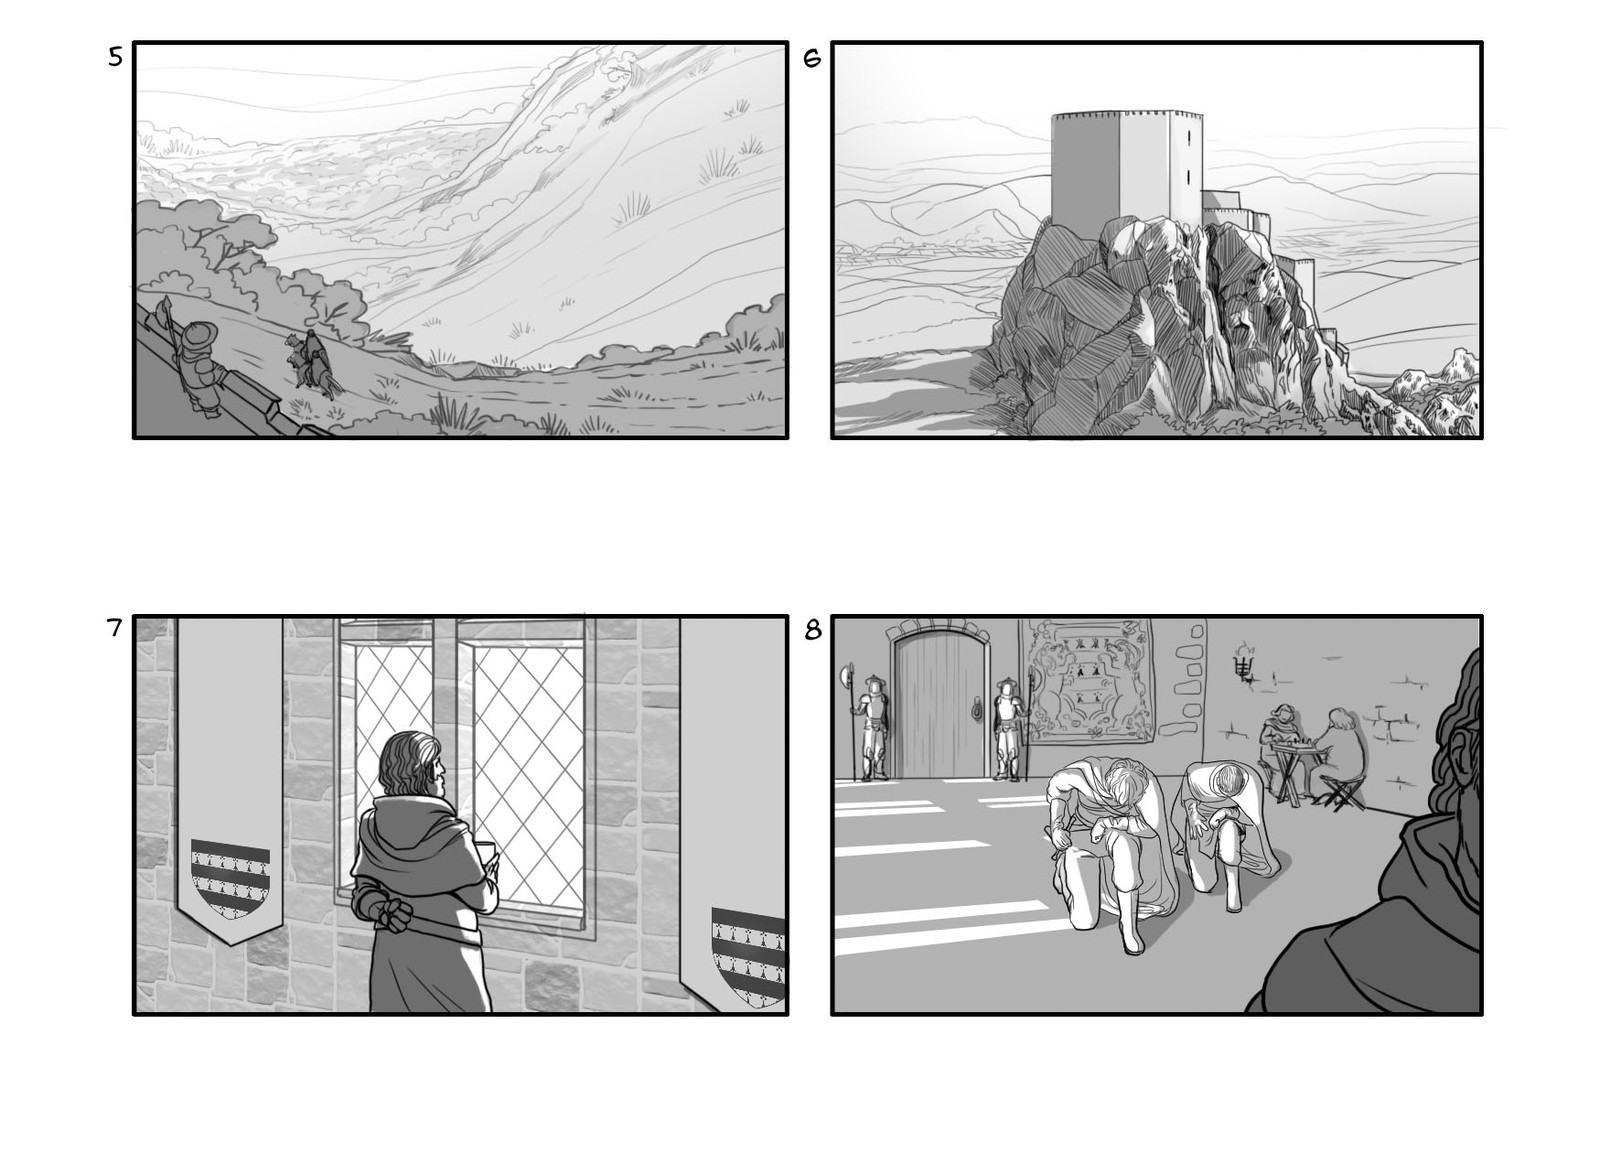 Storyboard made for a web video for the Occitanie region/county in France - Page 2 - (In French)